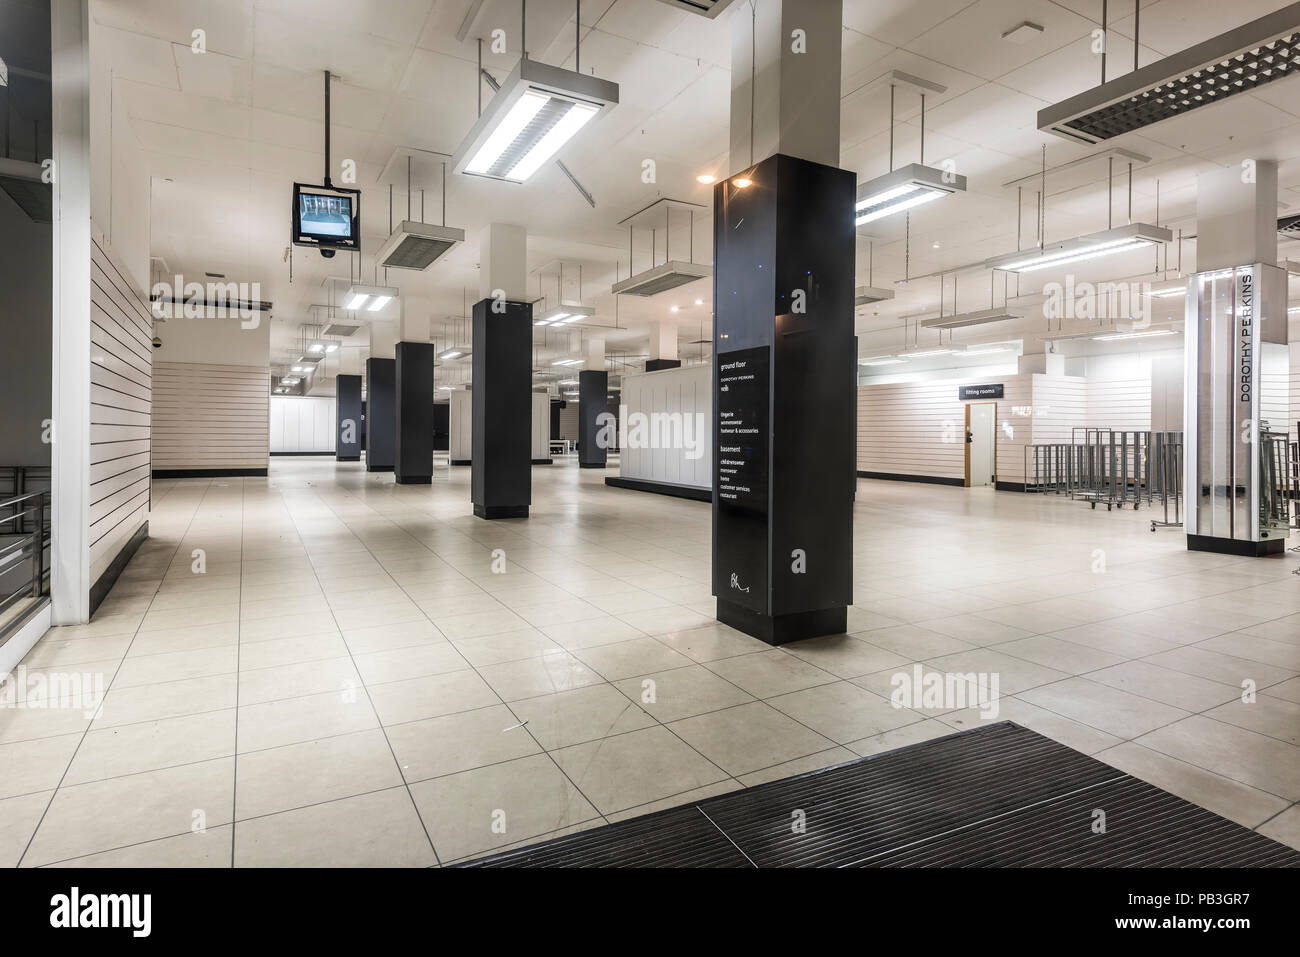 bhs store empty after closing down blackpool lancashire england uk - Stock Image